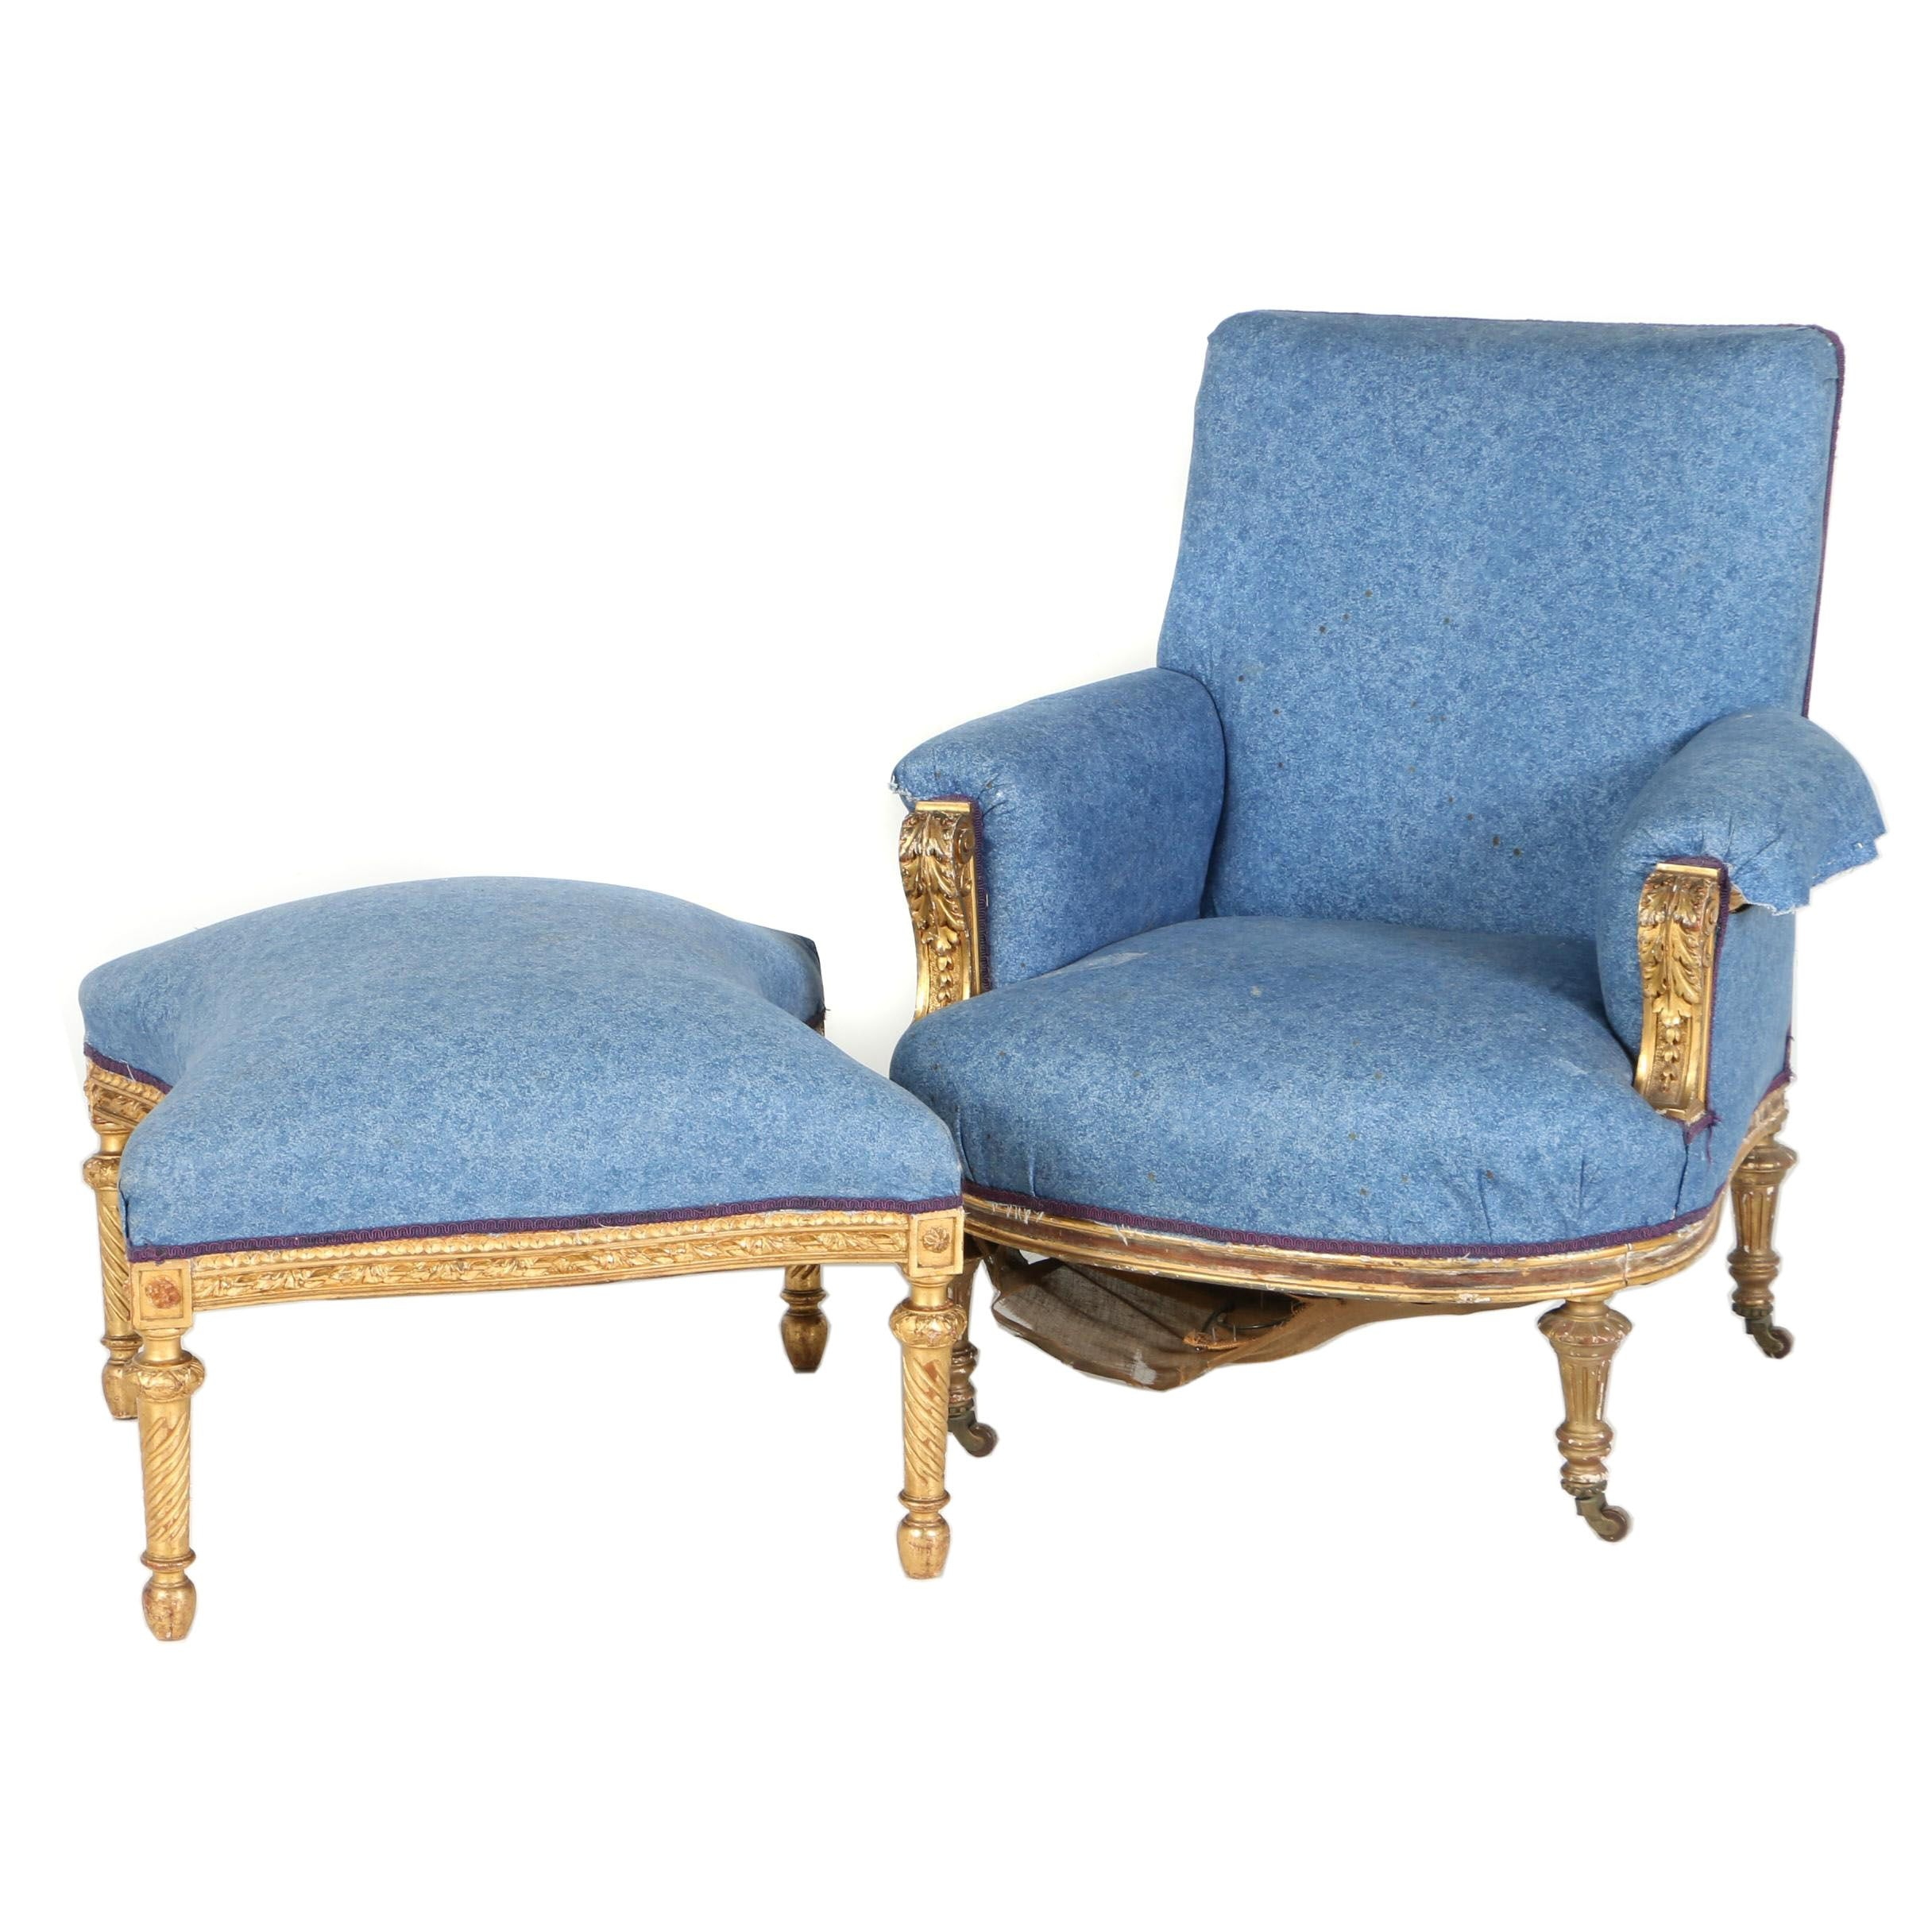 Victorian Giltwood Armchair with Neoclassical Style Footstool, Late 19th Century